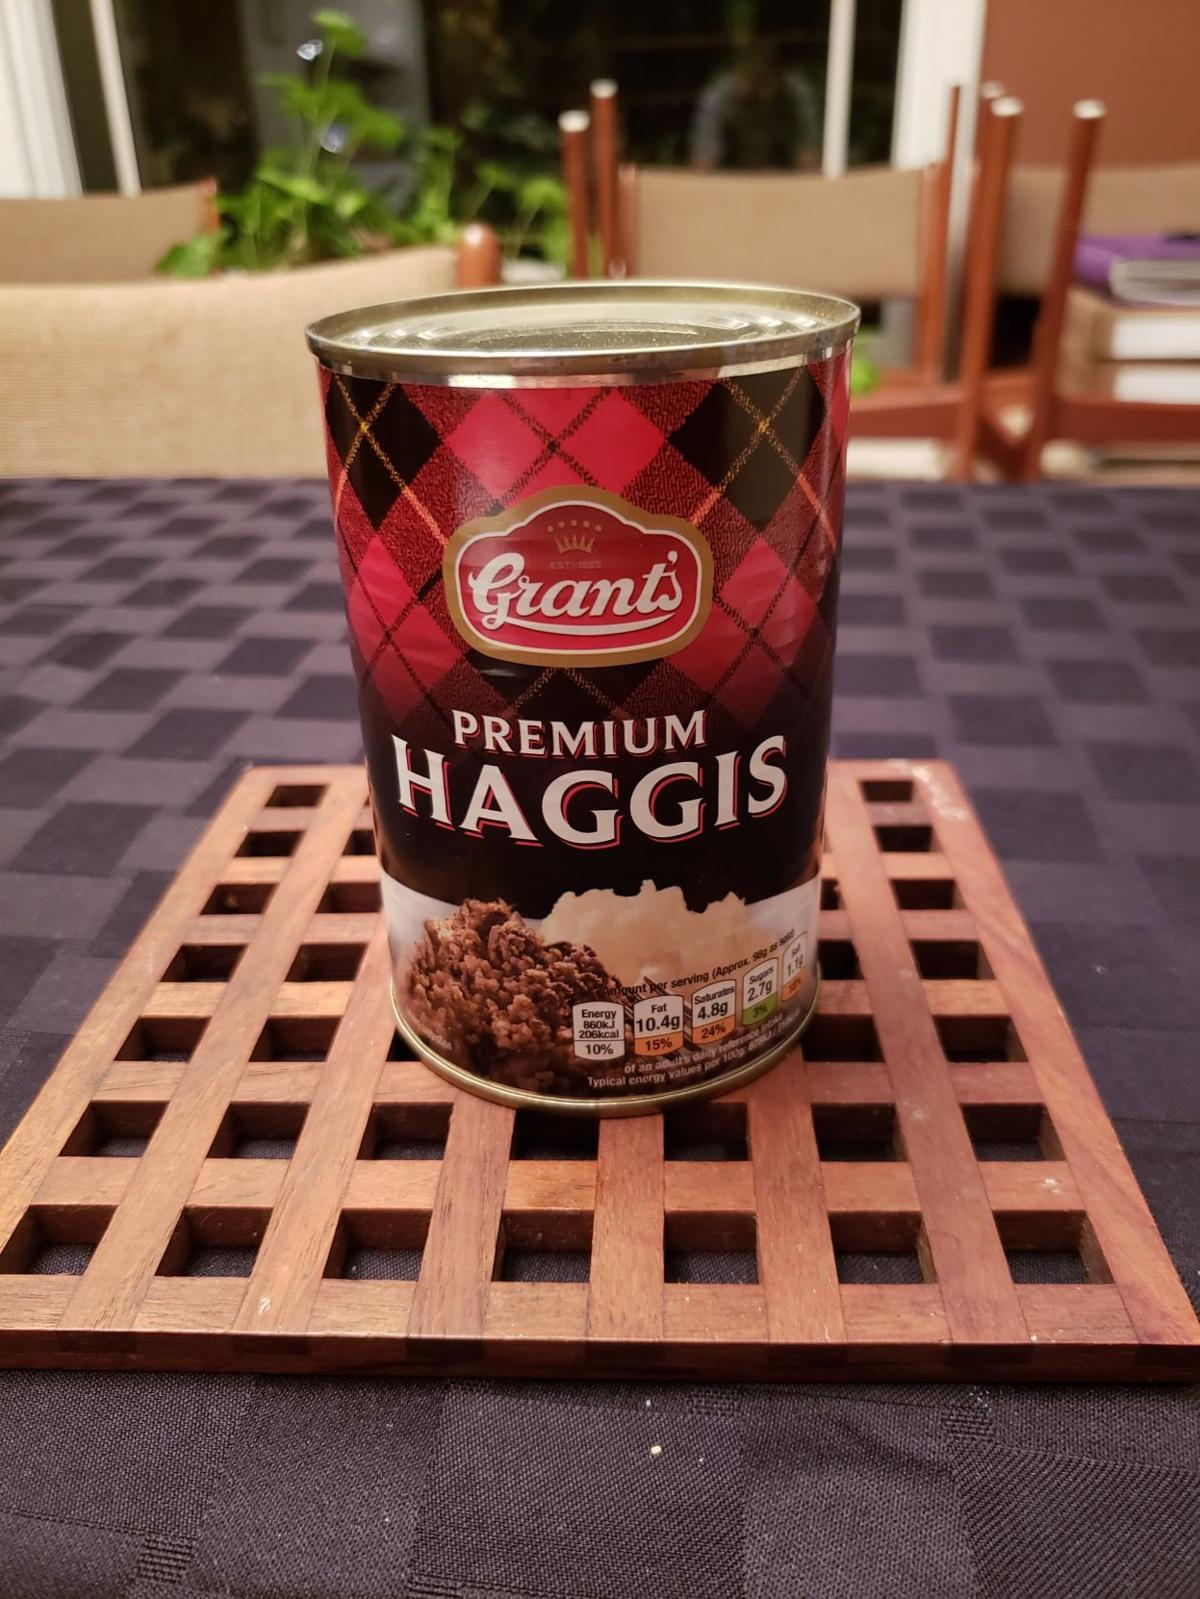 Haggis is traditionally made with cooked sheeps' pluck.